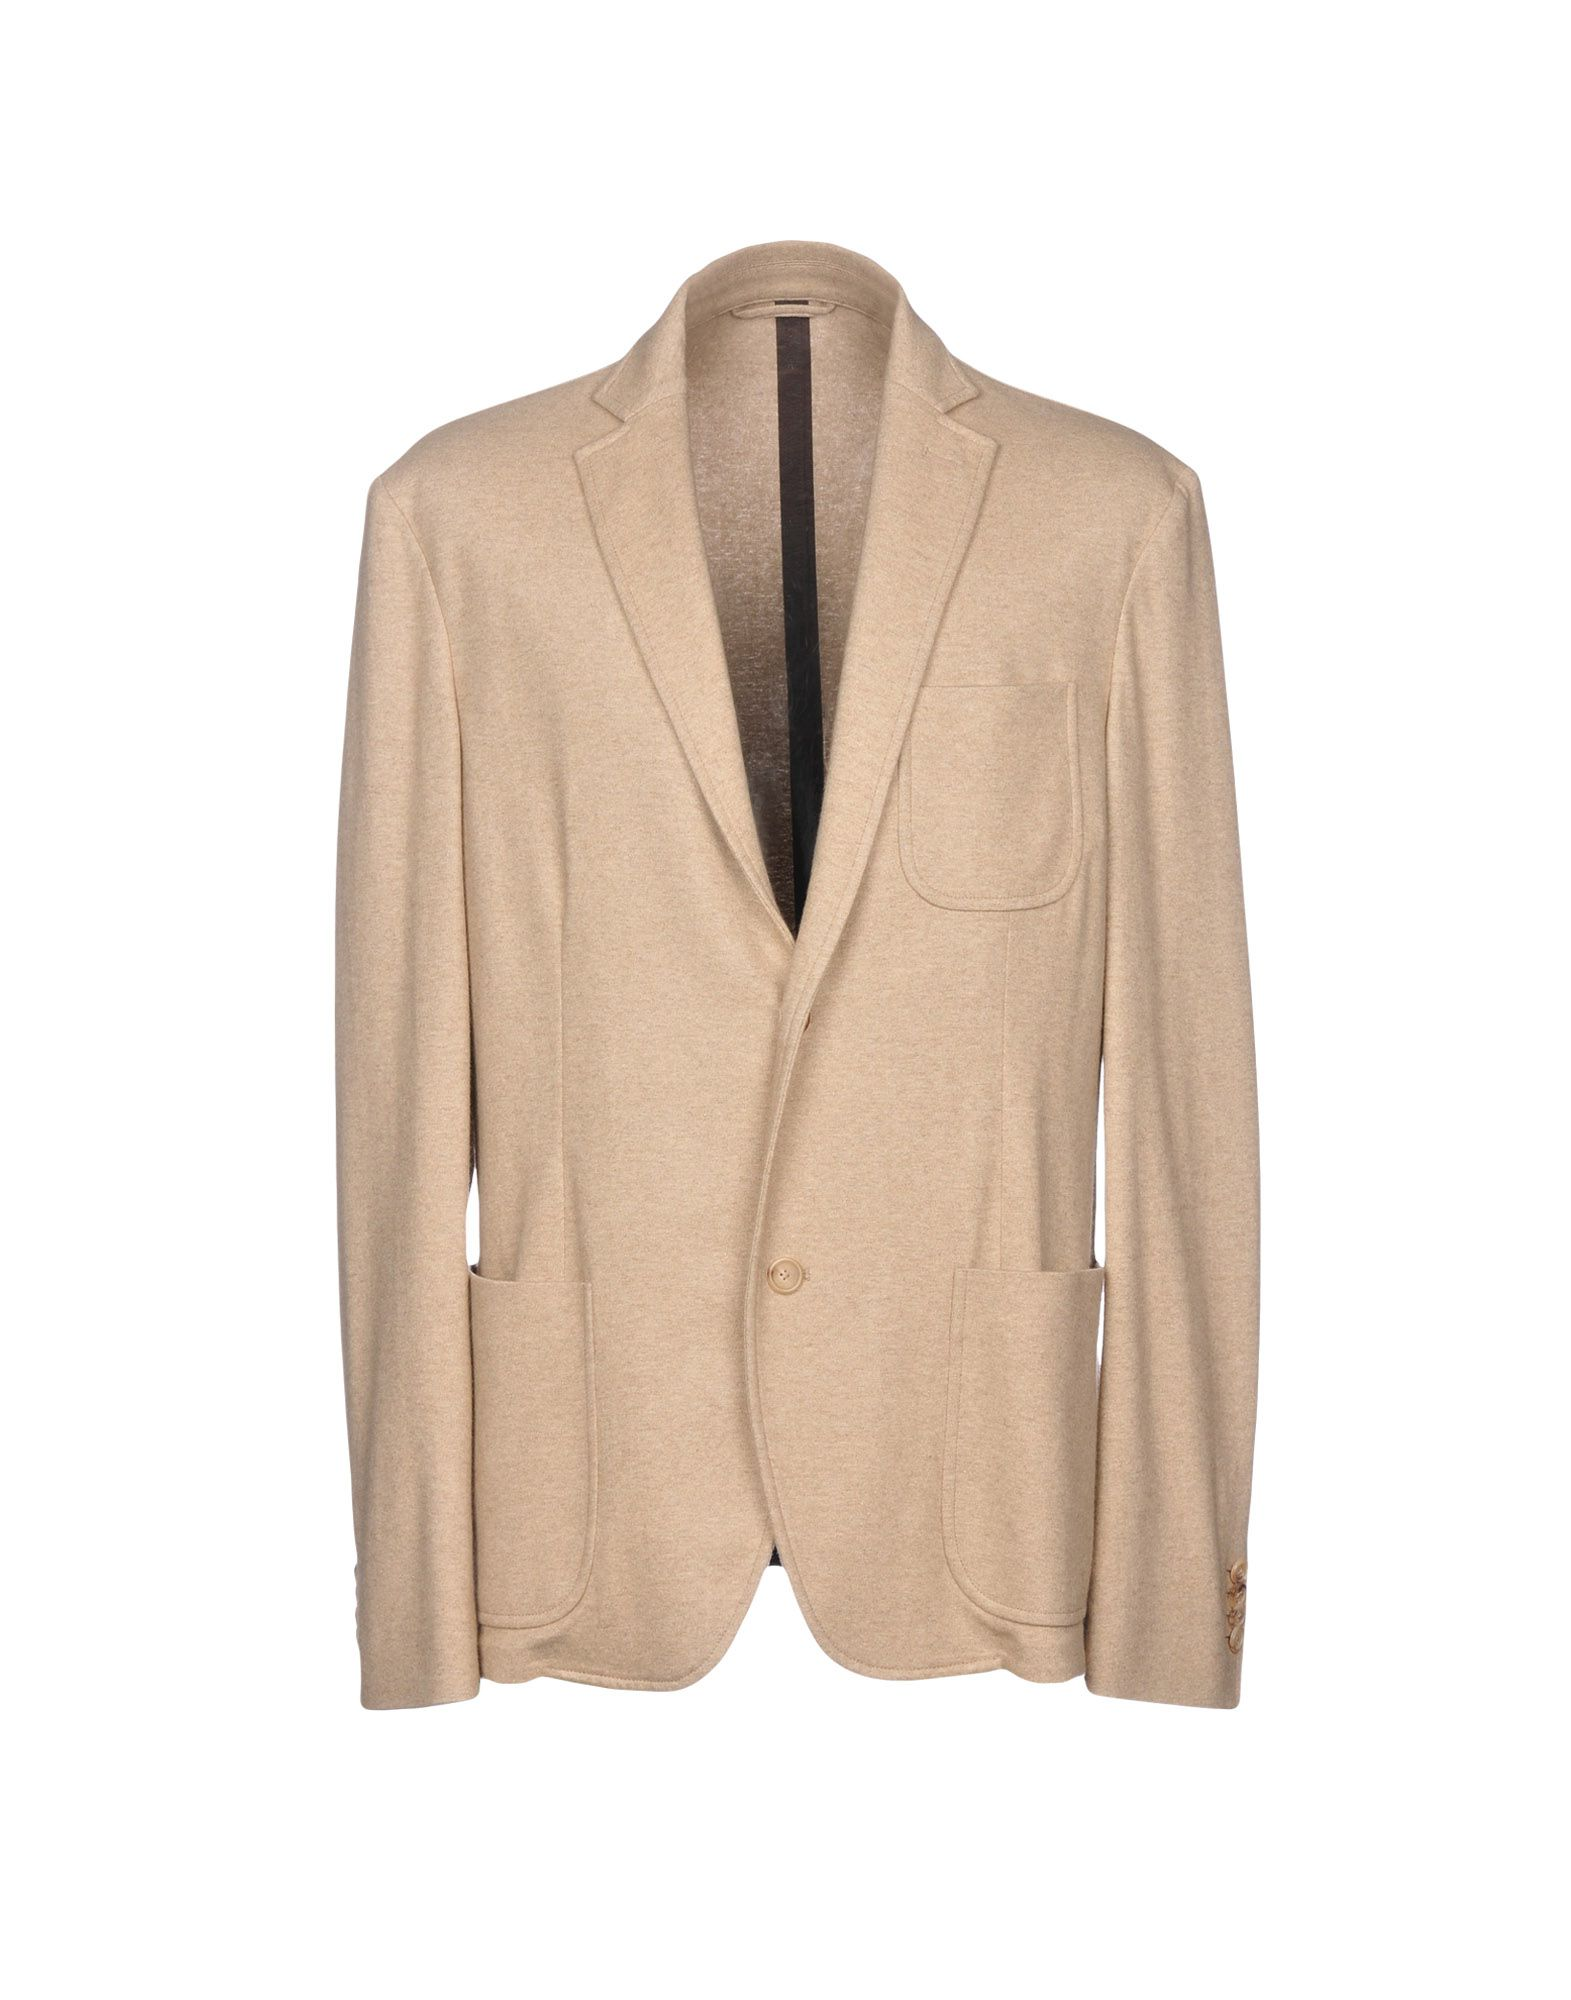 COLOMBO Blazer in Beige